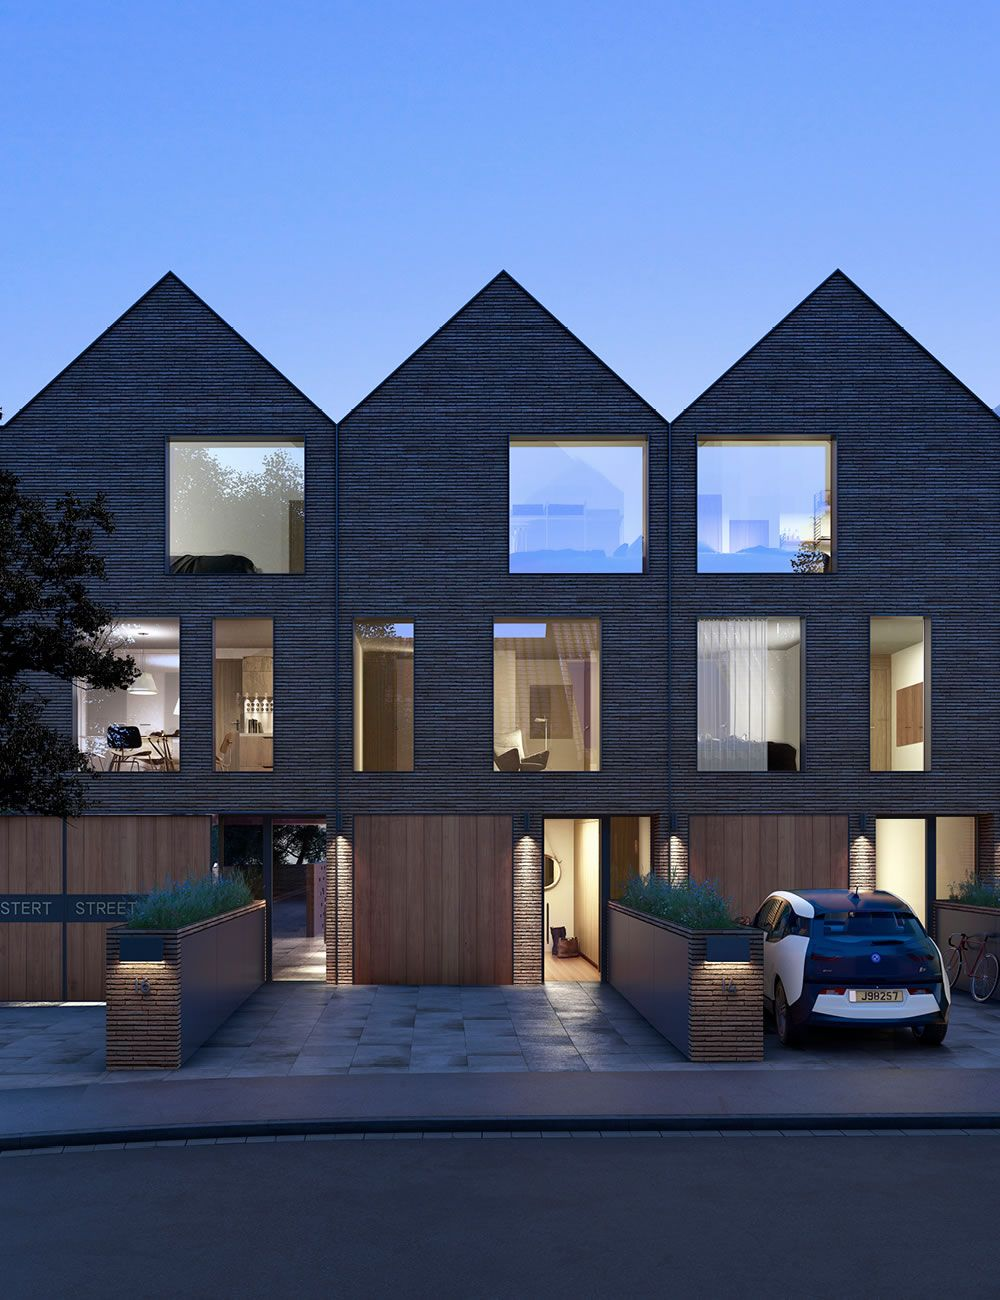 Ben Adams Architects | Architecture | Pinterest | Architektur ...